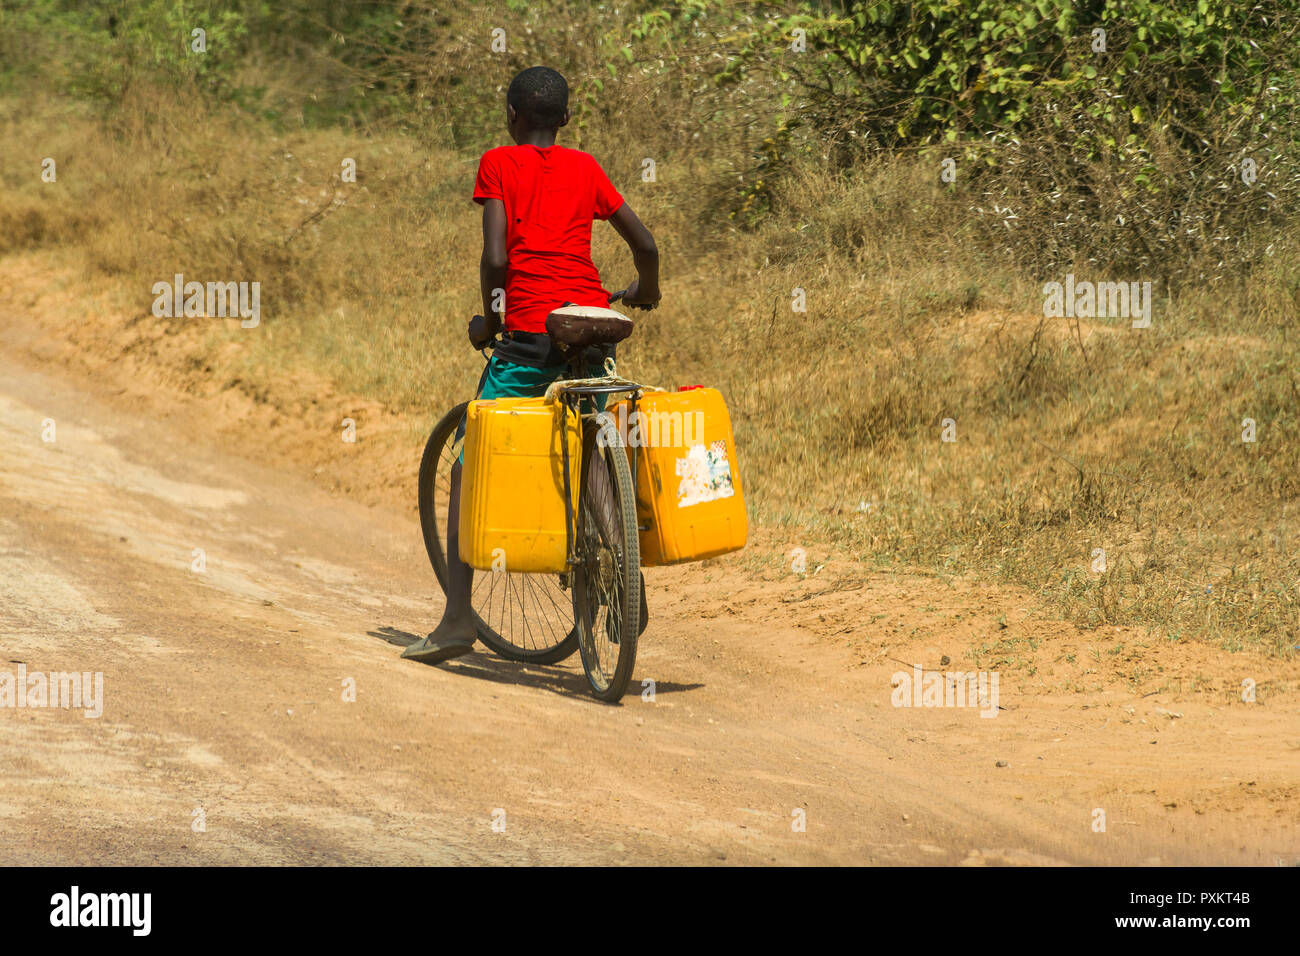 A boy cycles along a dusty road transporting water containers on the back of his bicycle, Kenya - Stock Image